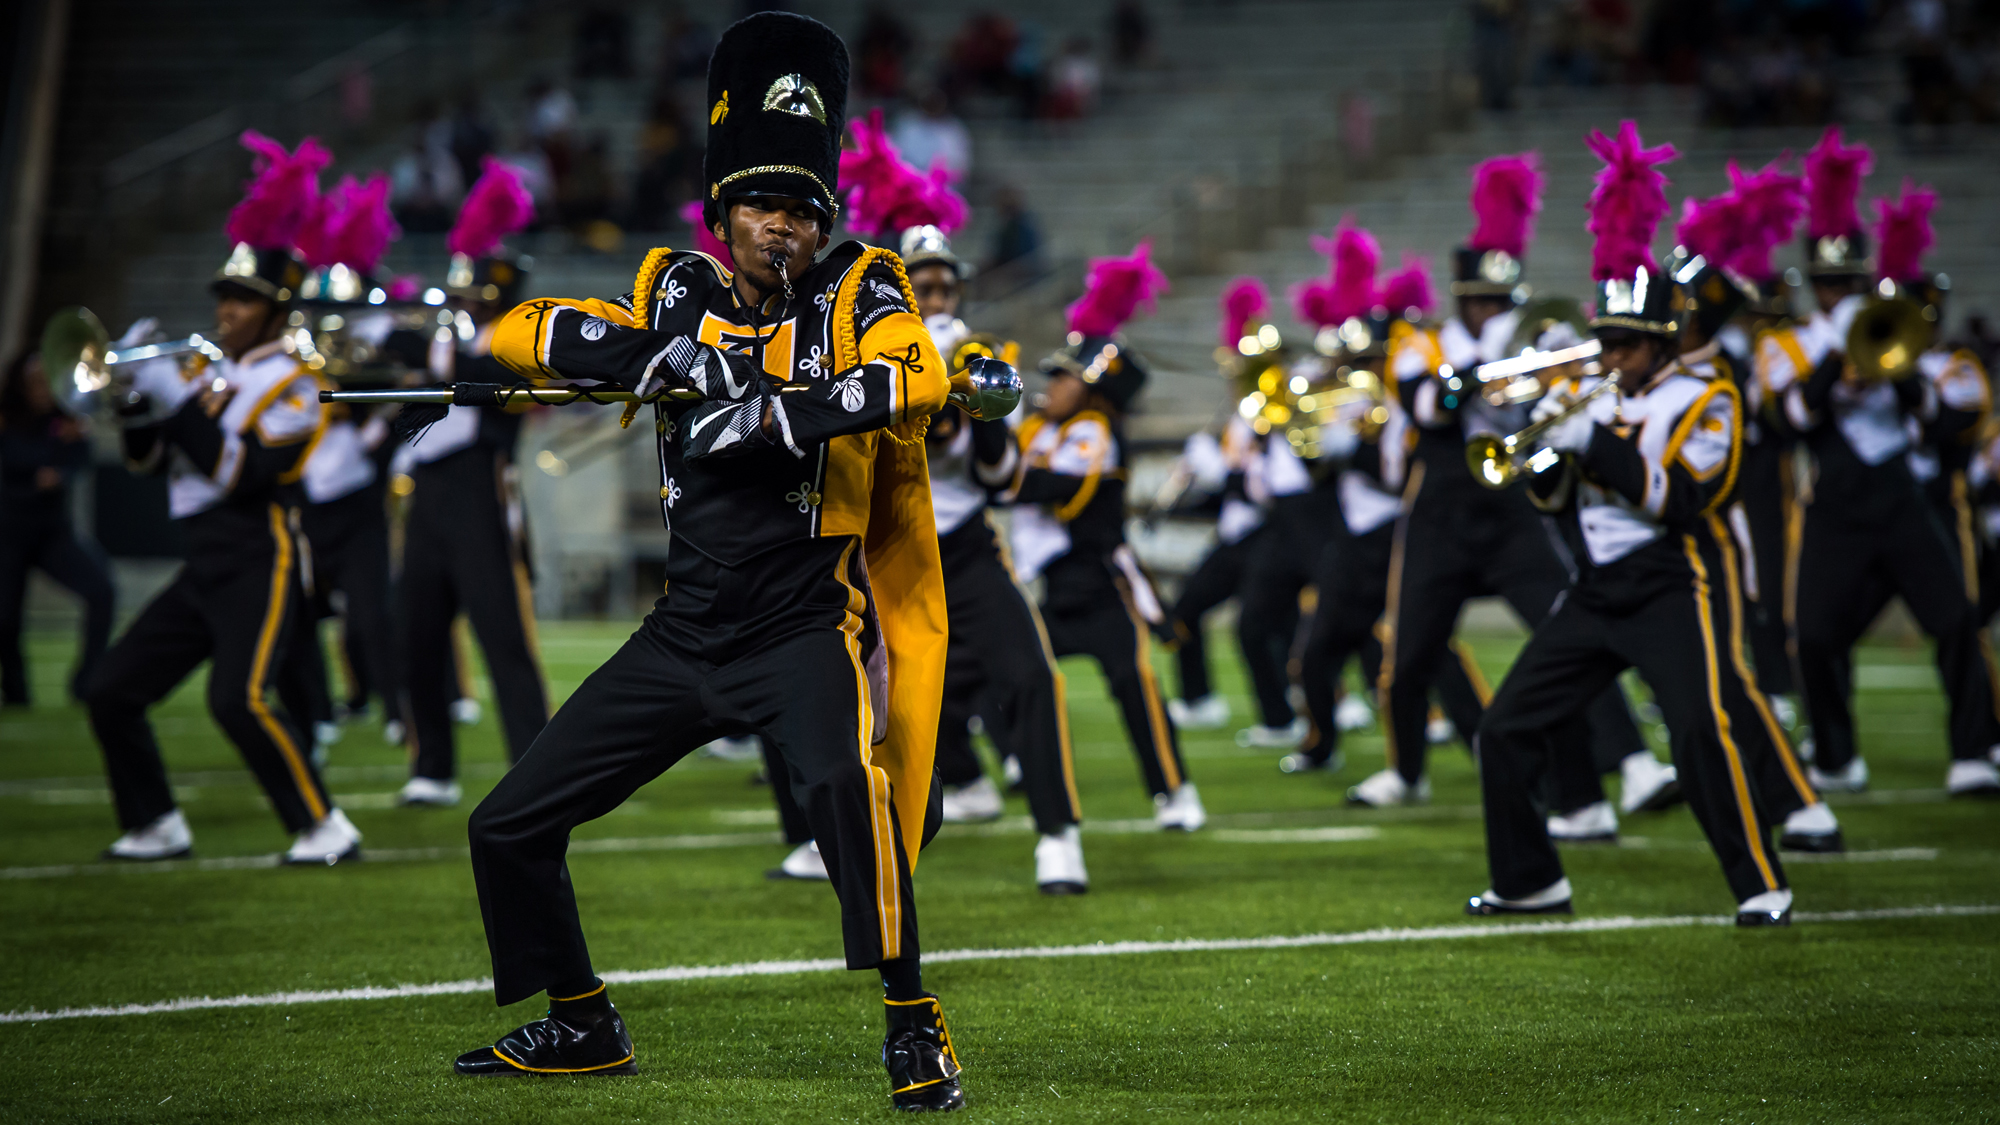 The 5th Quarter: Alabama State University